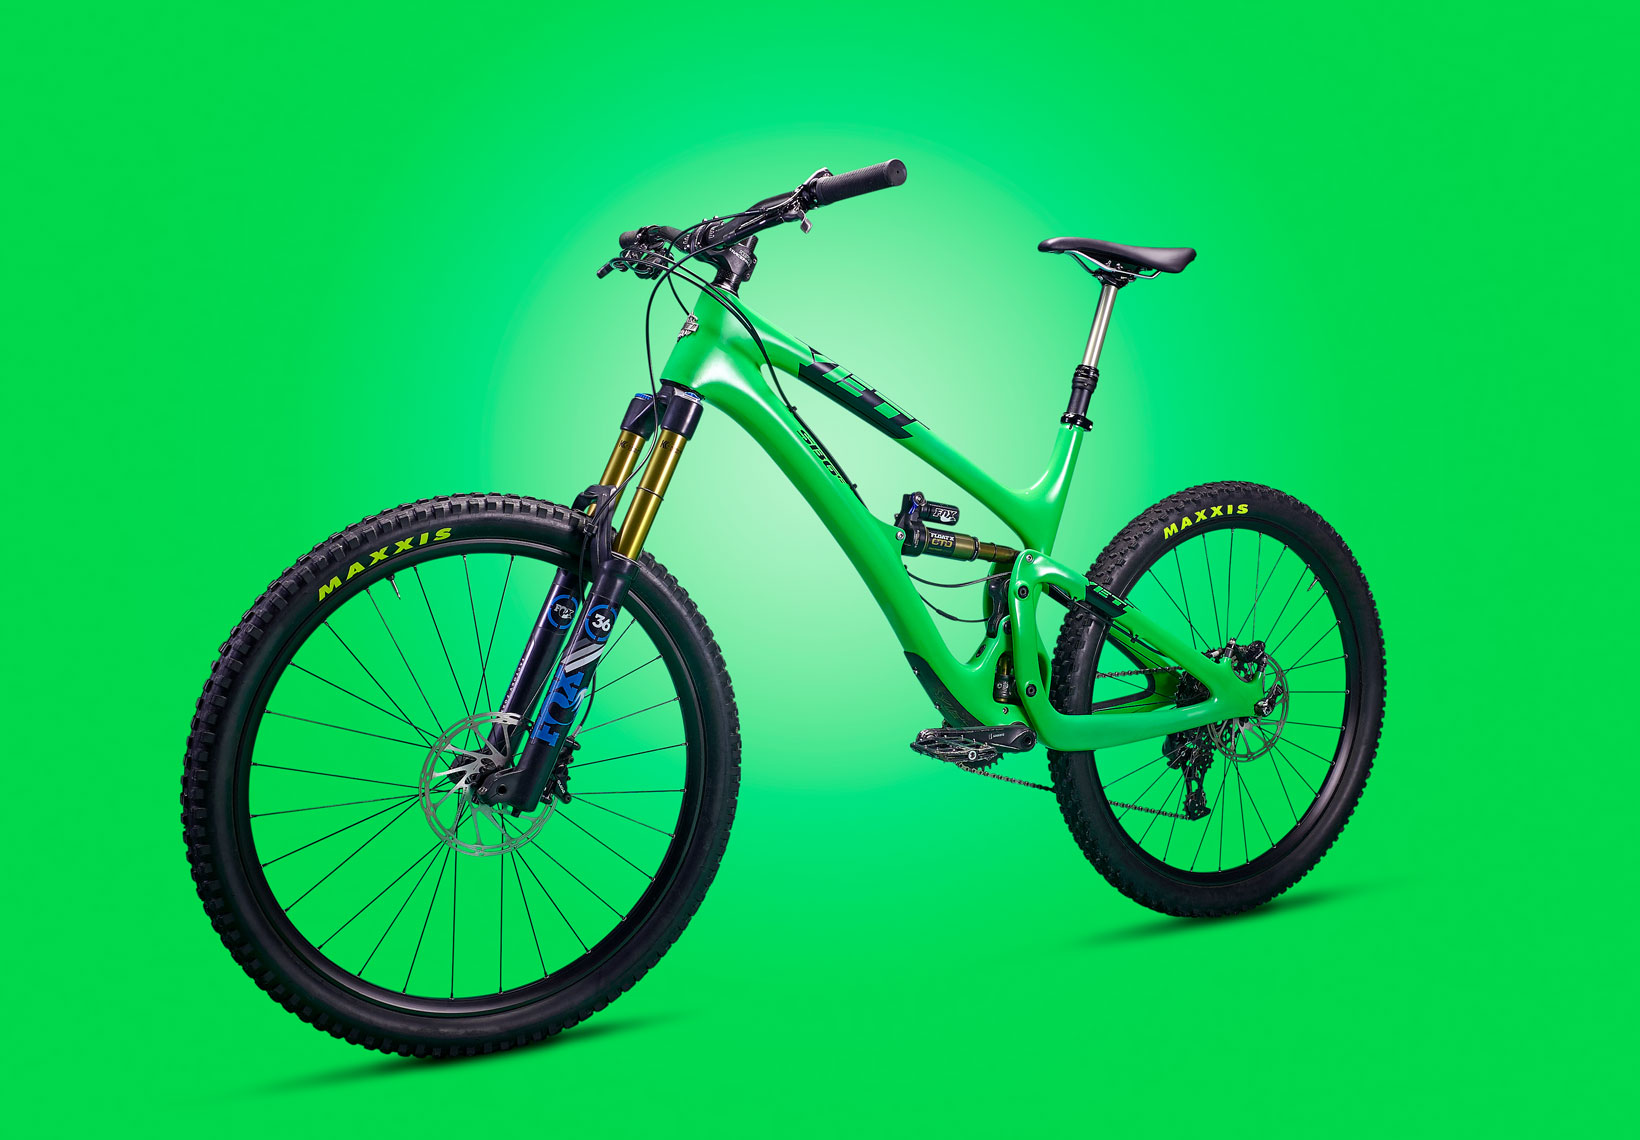 YETI BIKE/green bike on green background/product photography/InsideOut Studios